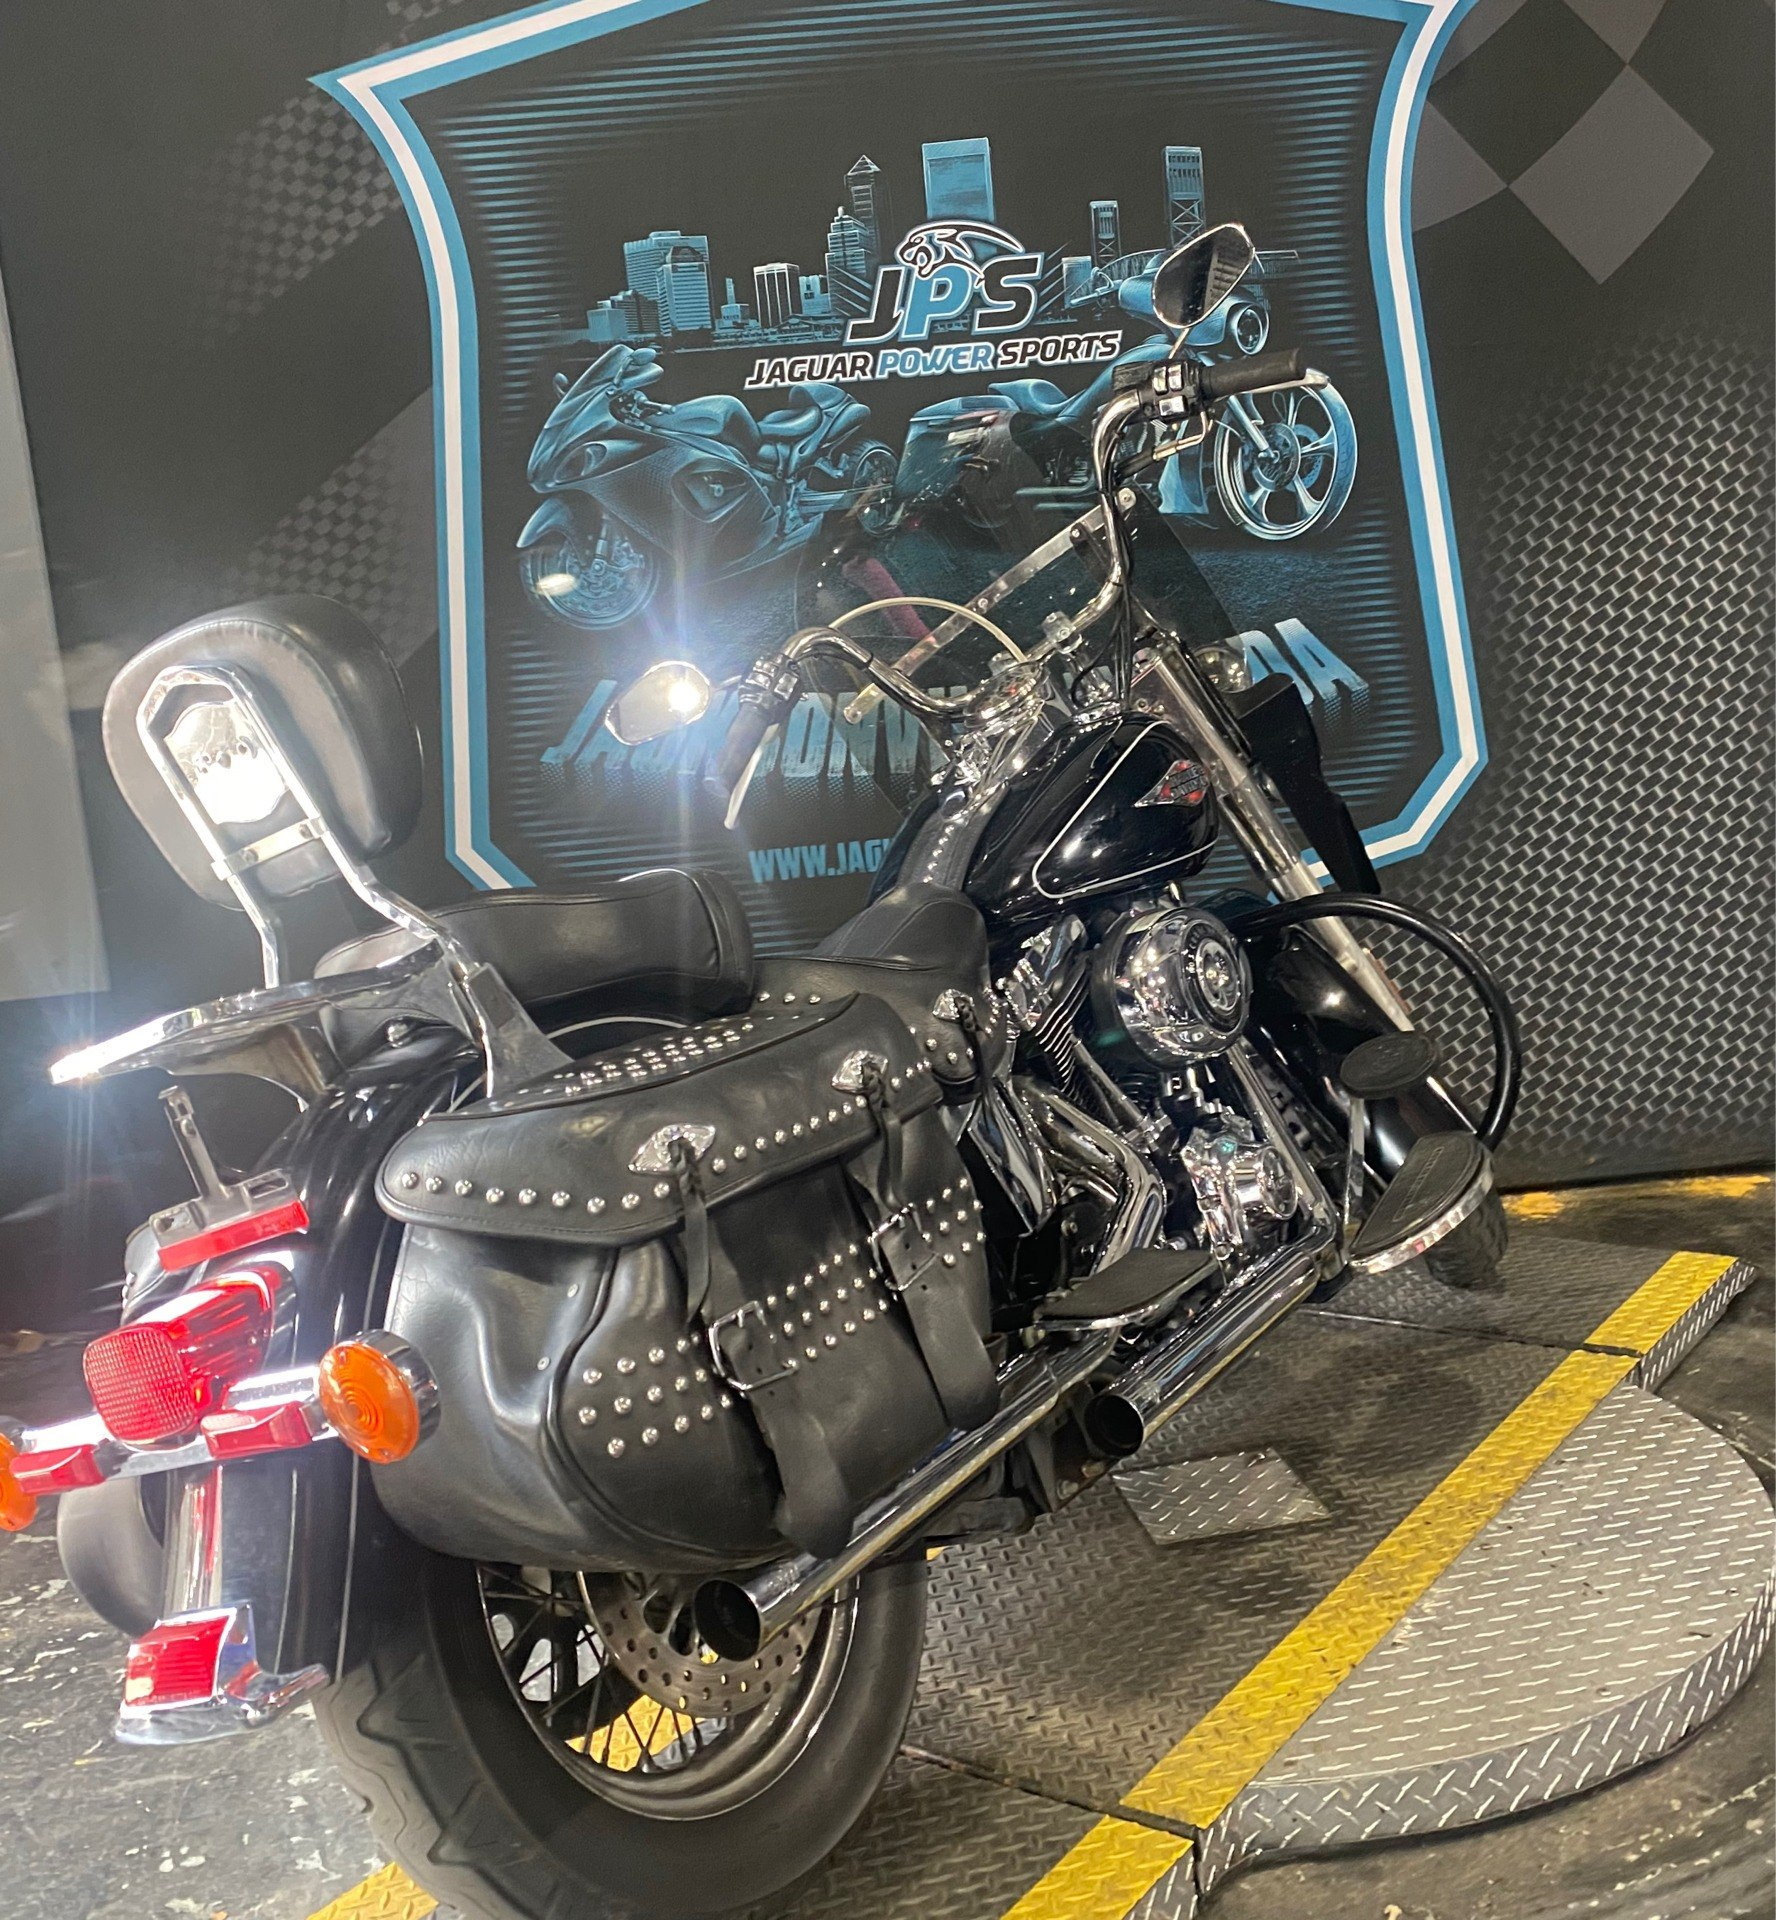 2014 Harley-Davidson Heritage Softail® Classic in Jacksonville, Florida - Photo 9